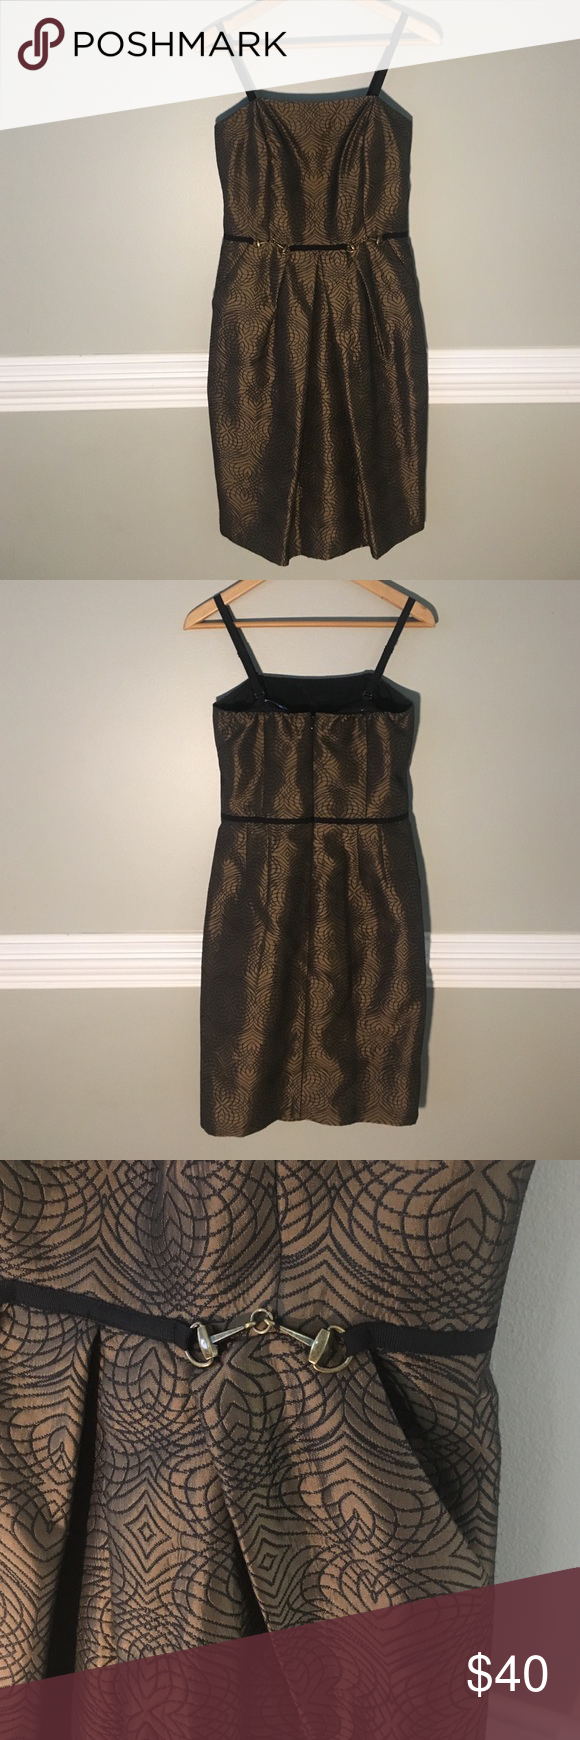 ANTONIO MELANI BRONZE BROCADE STRAPLESS DRESS Gorgeously flattering dress. Has pockets! Can be worn with or without straps. Worn once. Like new. ANTONIO MELANI Dresses Strapless